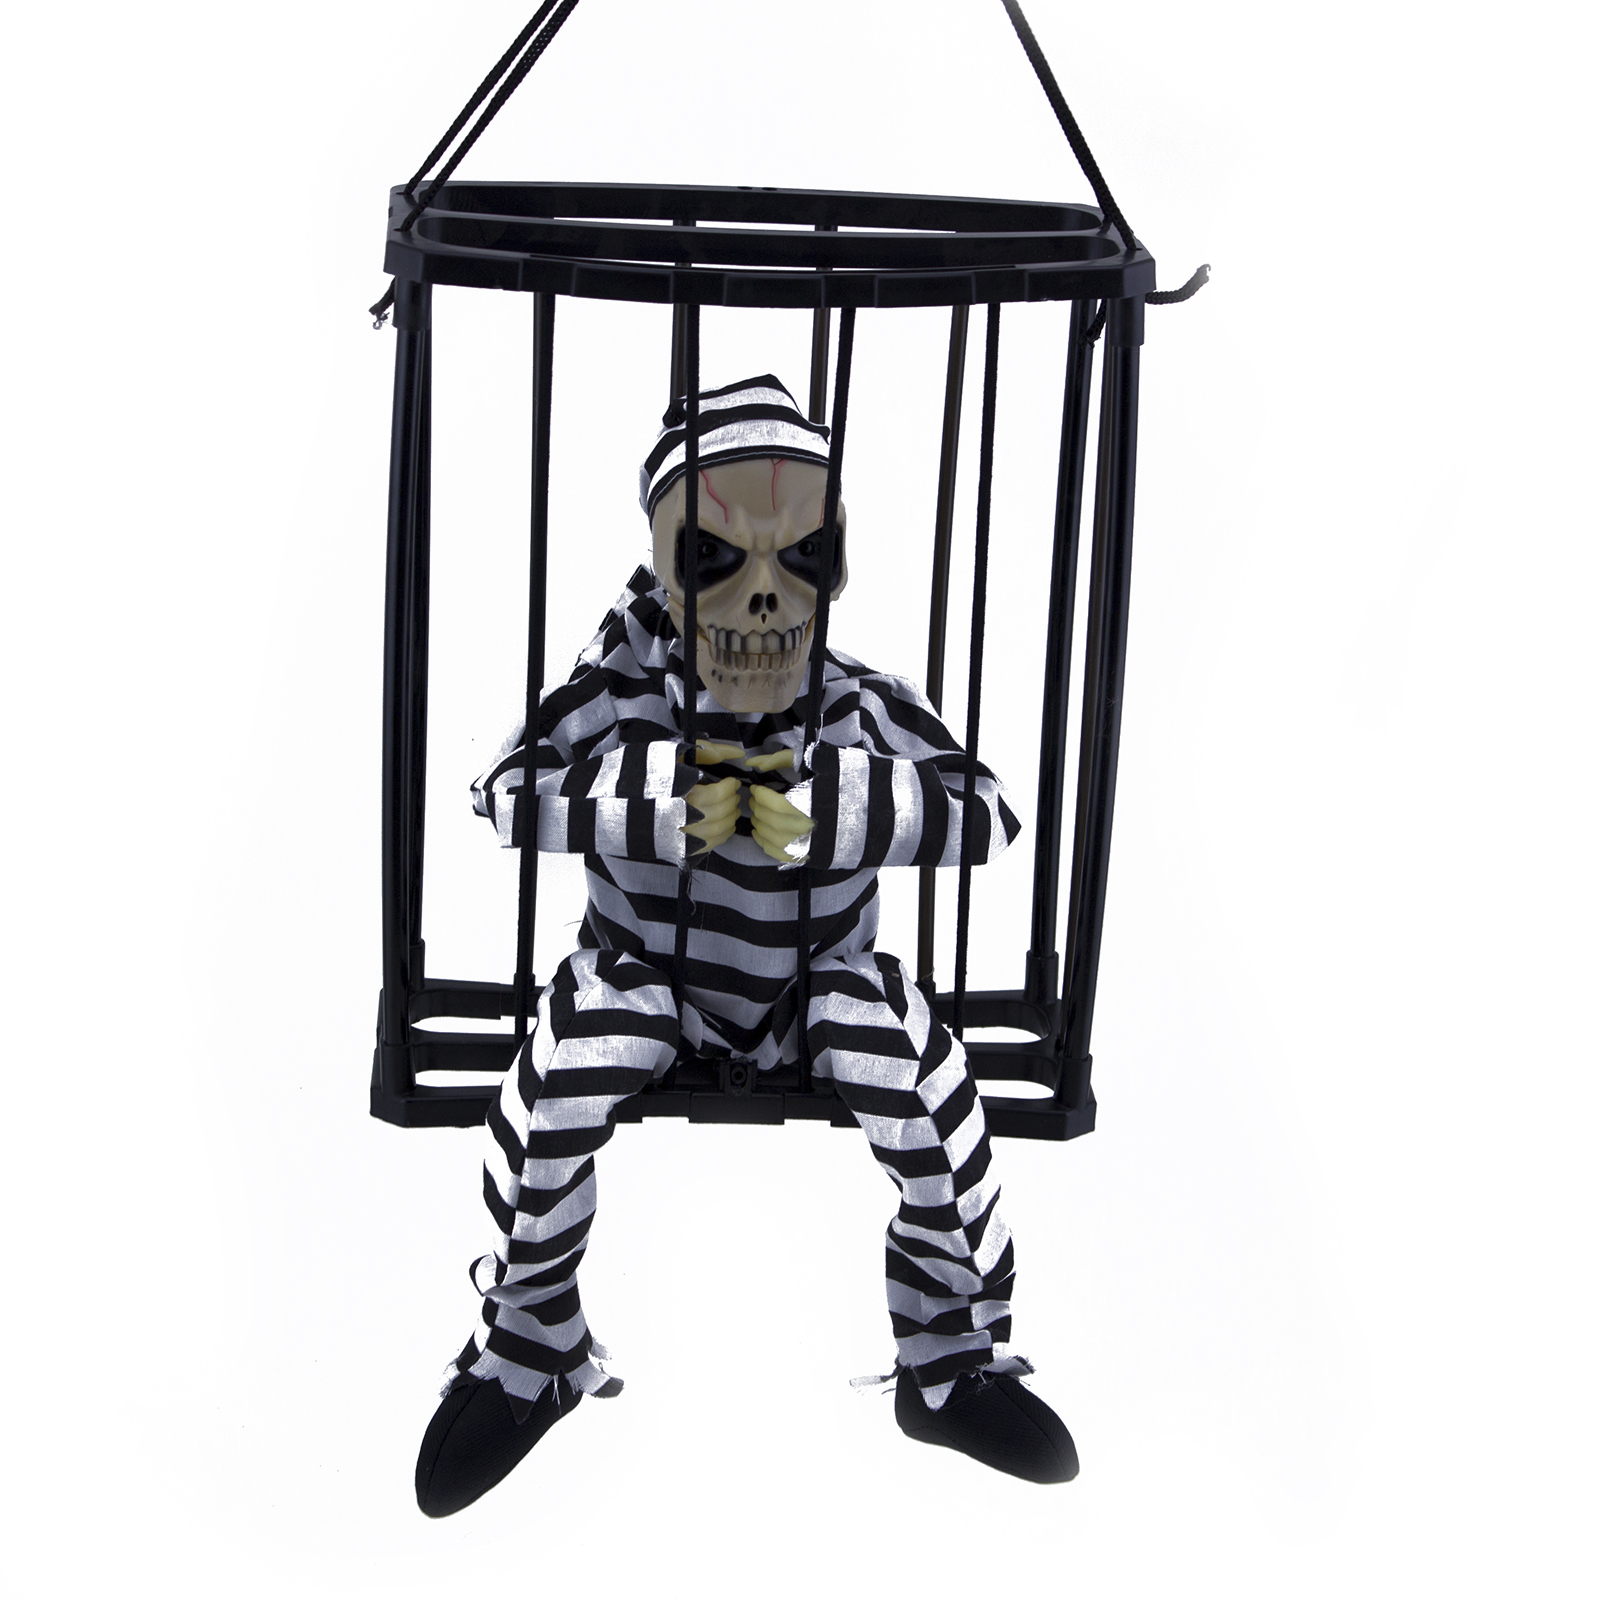 motion sensor hanging caged jail prisoner skeleton halloween decoration light up - Skeleton Halloween Decoration